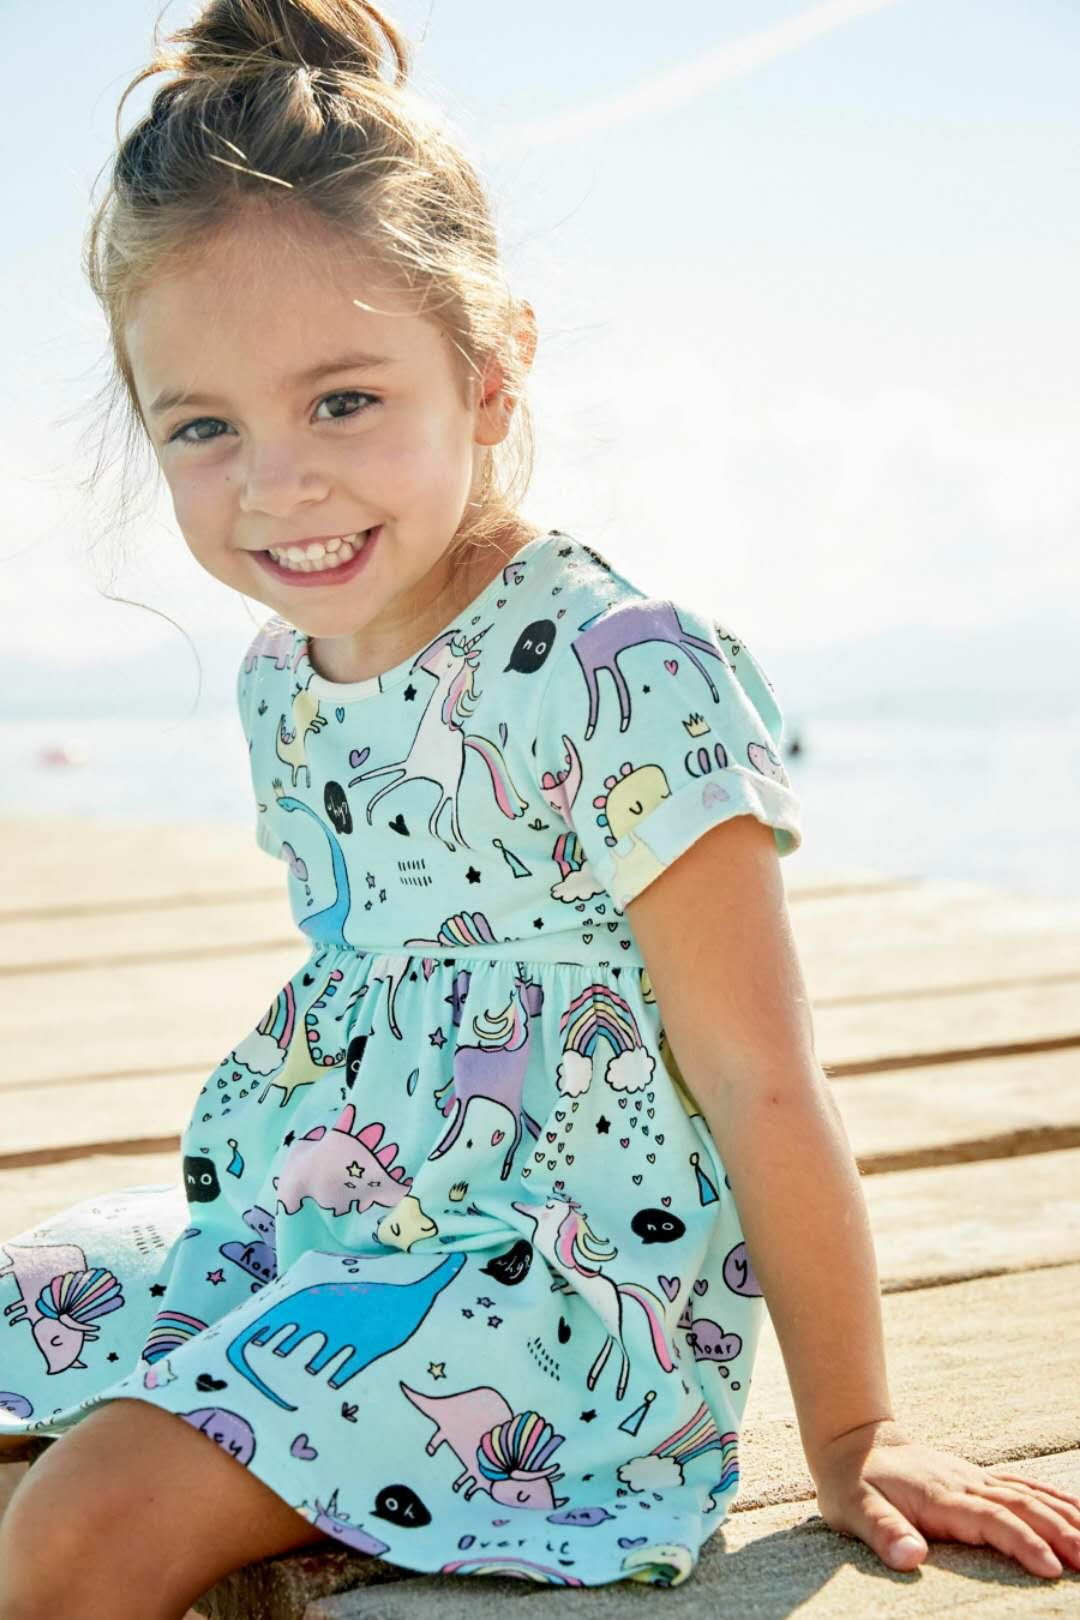 Little Girls Dinosaur Tunic Short Sleeve Summer Casual Dress size 2t(1t-2t) by Bumeex (Image #2)